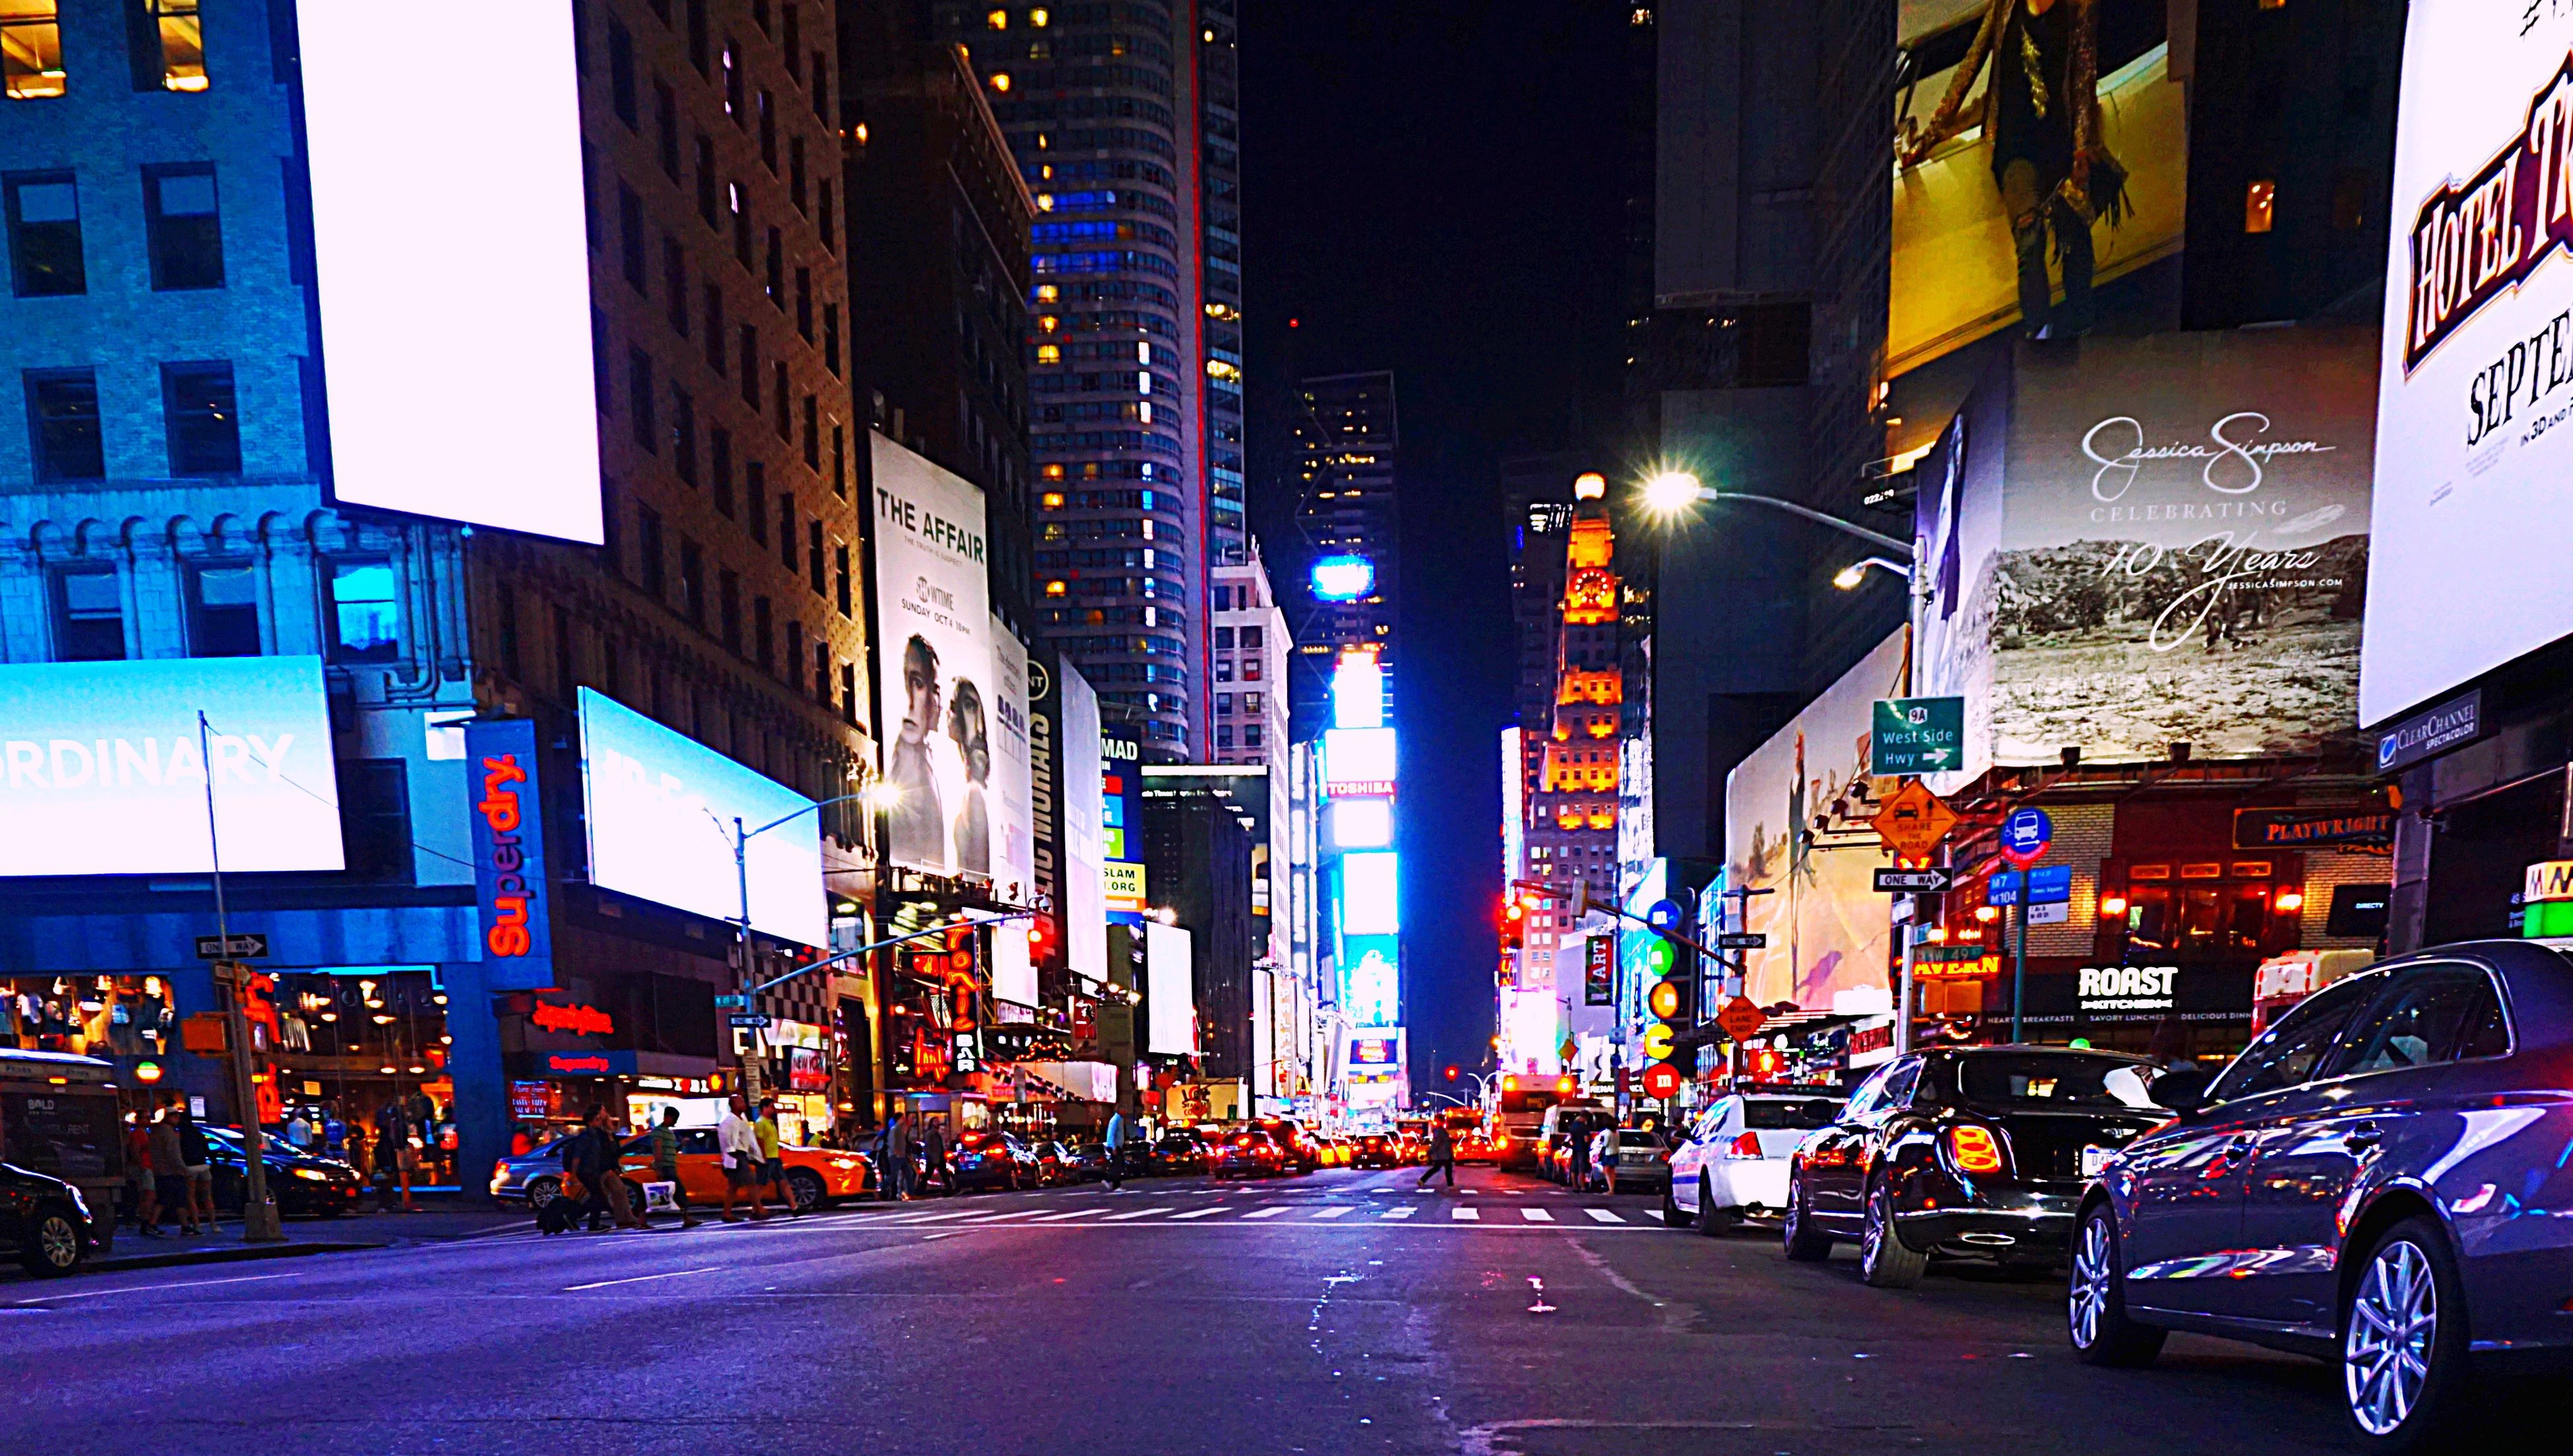 Street life, night colours - 🌜🌃🗽🇺🇸🔝📸 - Battle Of The Cities City Architecture Built Structure Night City Life City Street Nightphotography Night Lights Street Streetphotography Light New York New York City Times Square NYC Traveling Vacations Urban EyeEm Best Shots Eye4photography  EyeEmBestPics Travel Picoftheday Photo Building Exterior